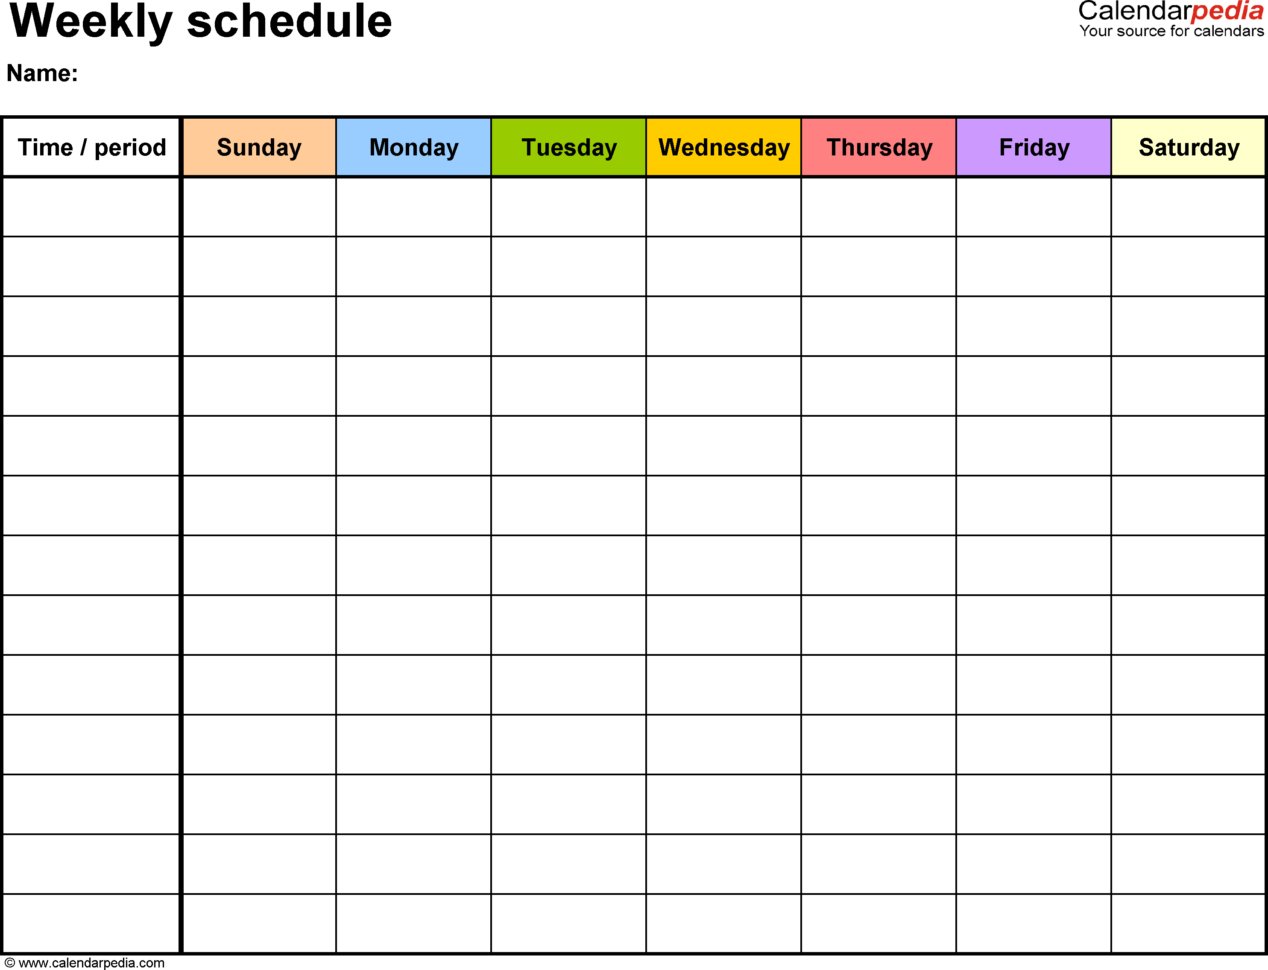 Excel Spreadsheet Schedule Template In Free Weekly Schedule Templates For Excel  18 Templates